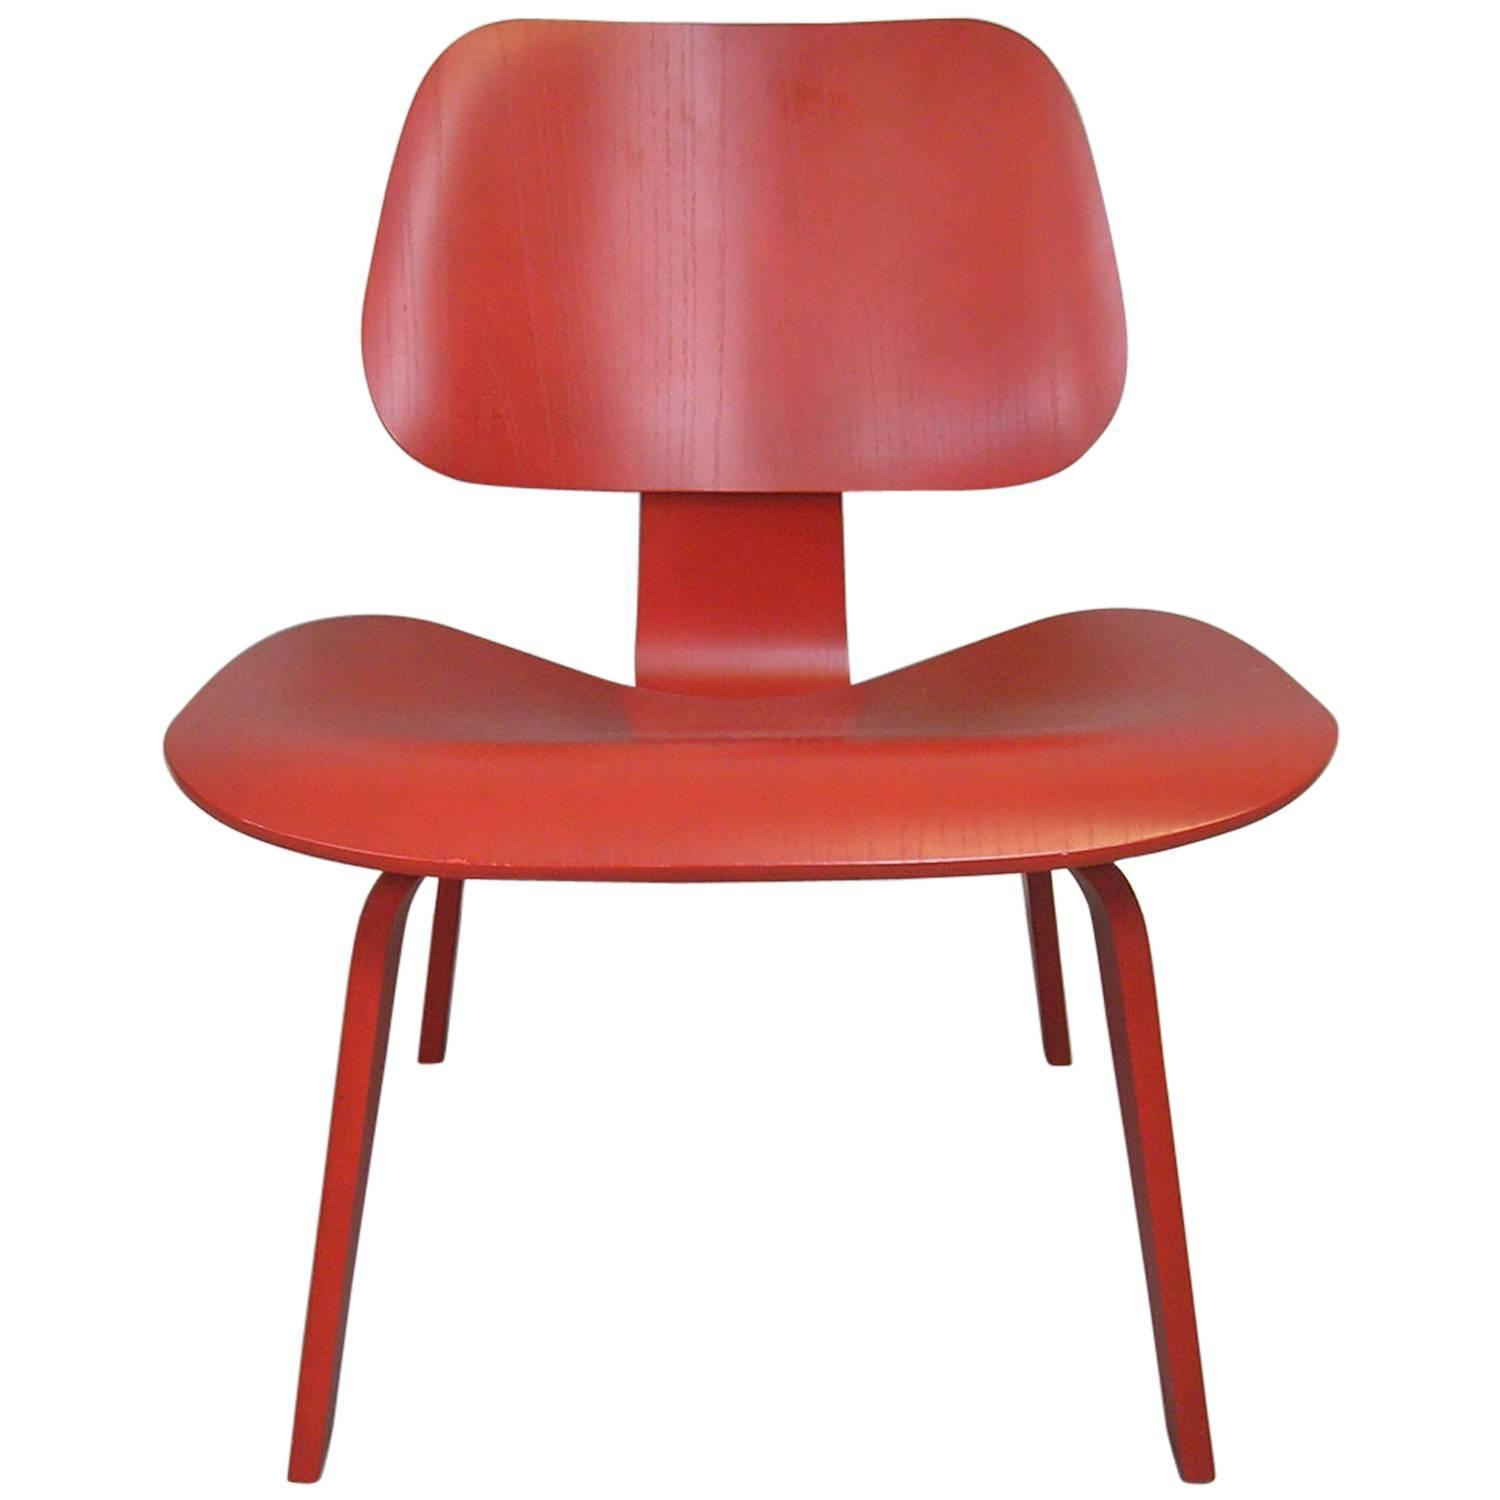 Charles Eames LCW Chair For Sale at 1stdibs